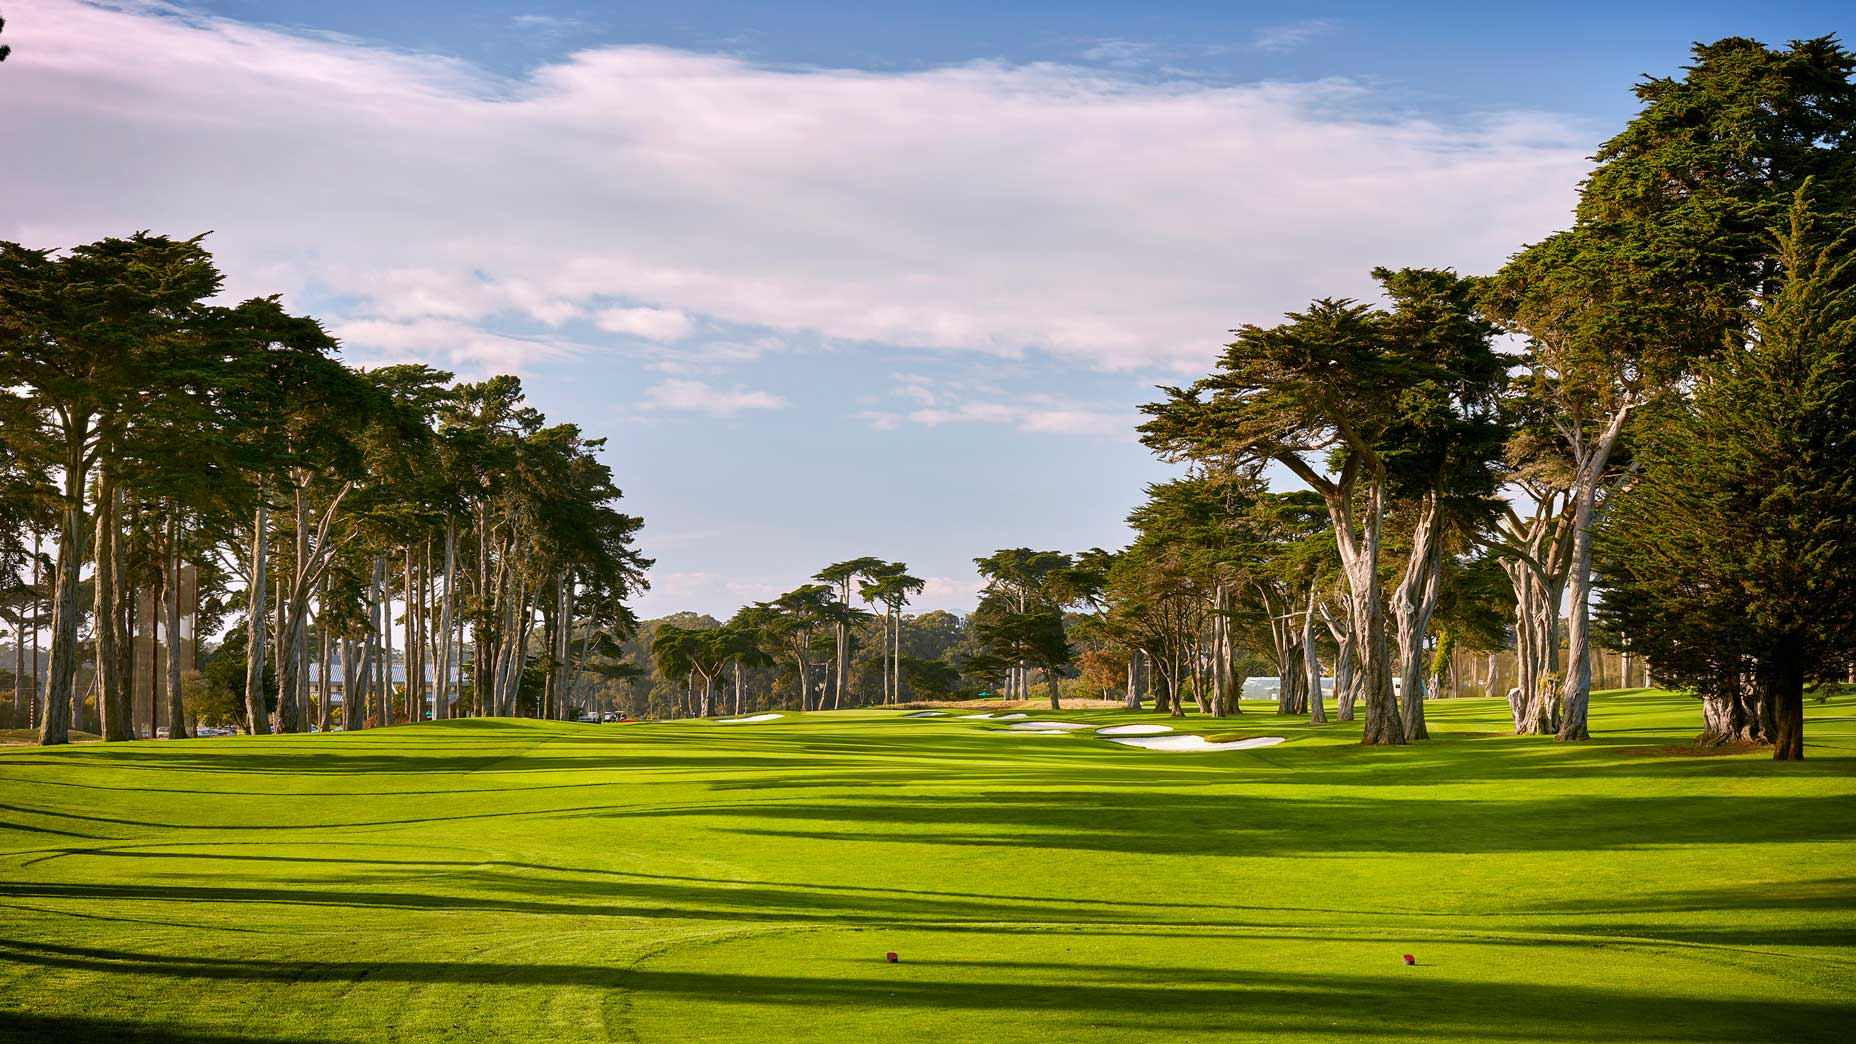 The 515-yard, par-4 9th hole at TPC Harding Park in 2018.